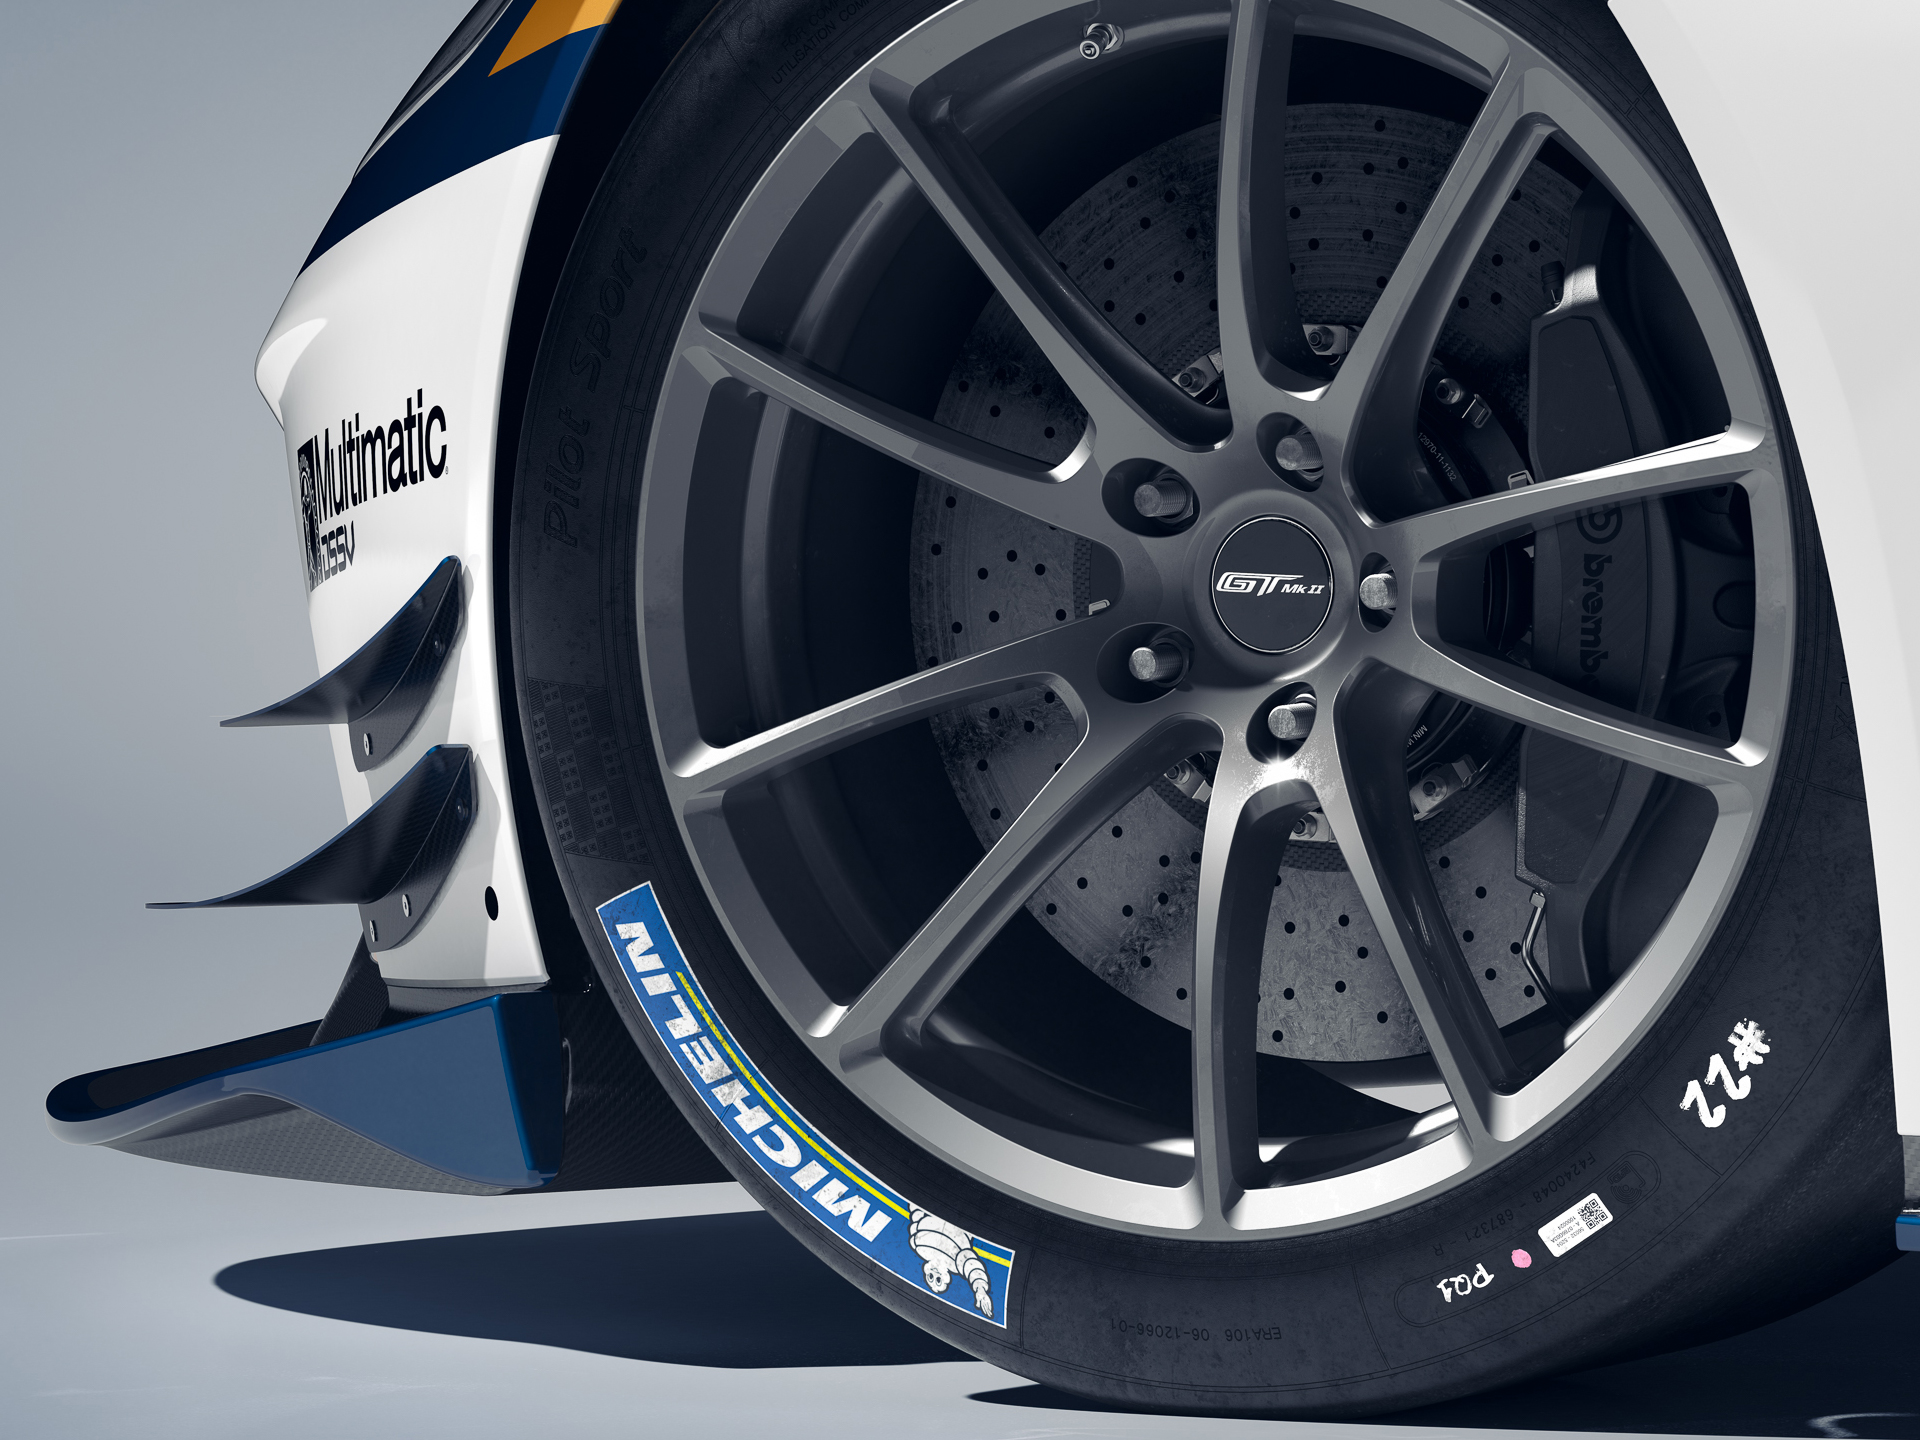 Ford GT Mk II - 2019 - Michelin tyre - Brembo brake disc